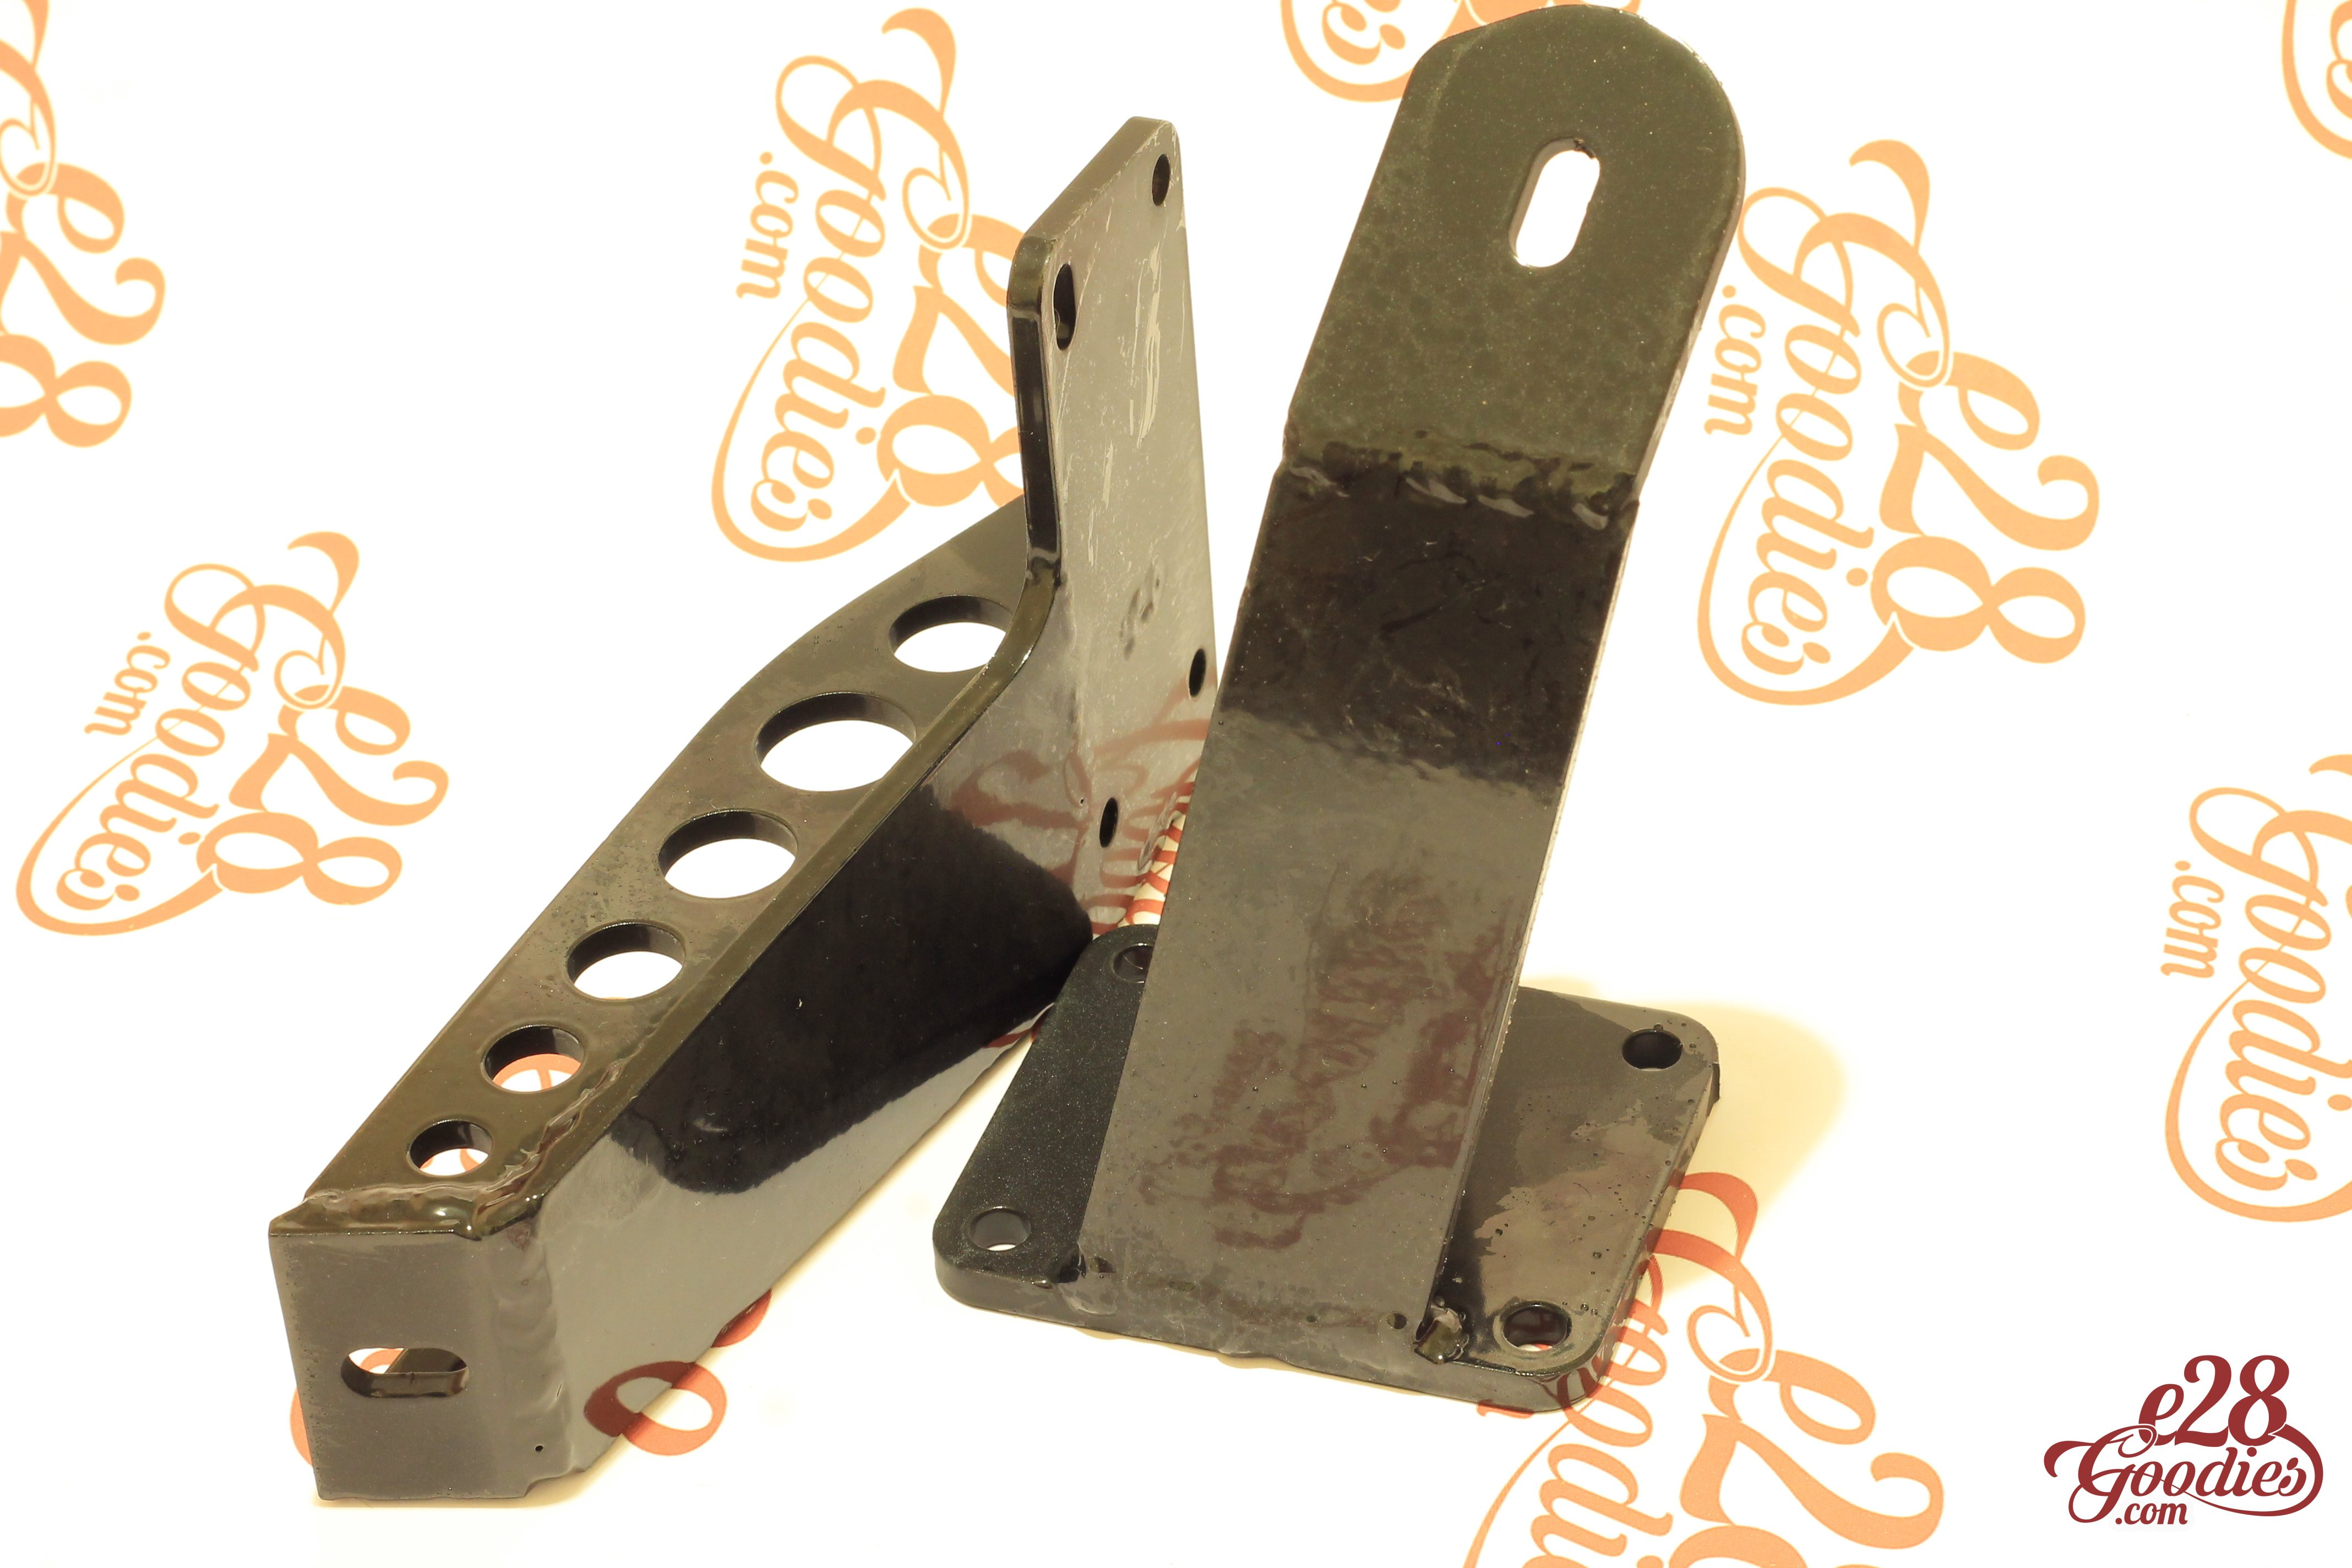 M50/M52/M54 or   S50/S52/S54 engine mounts for your e28 (improved!)